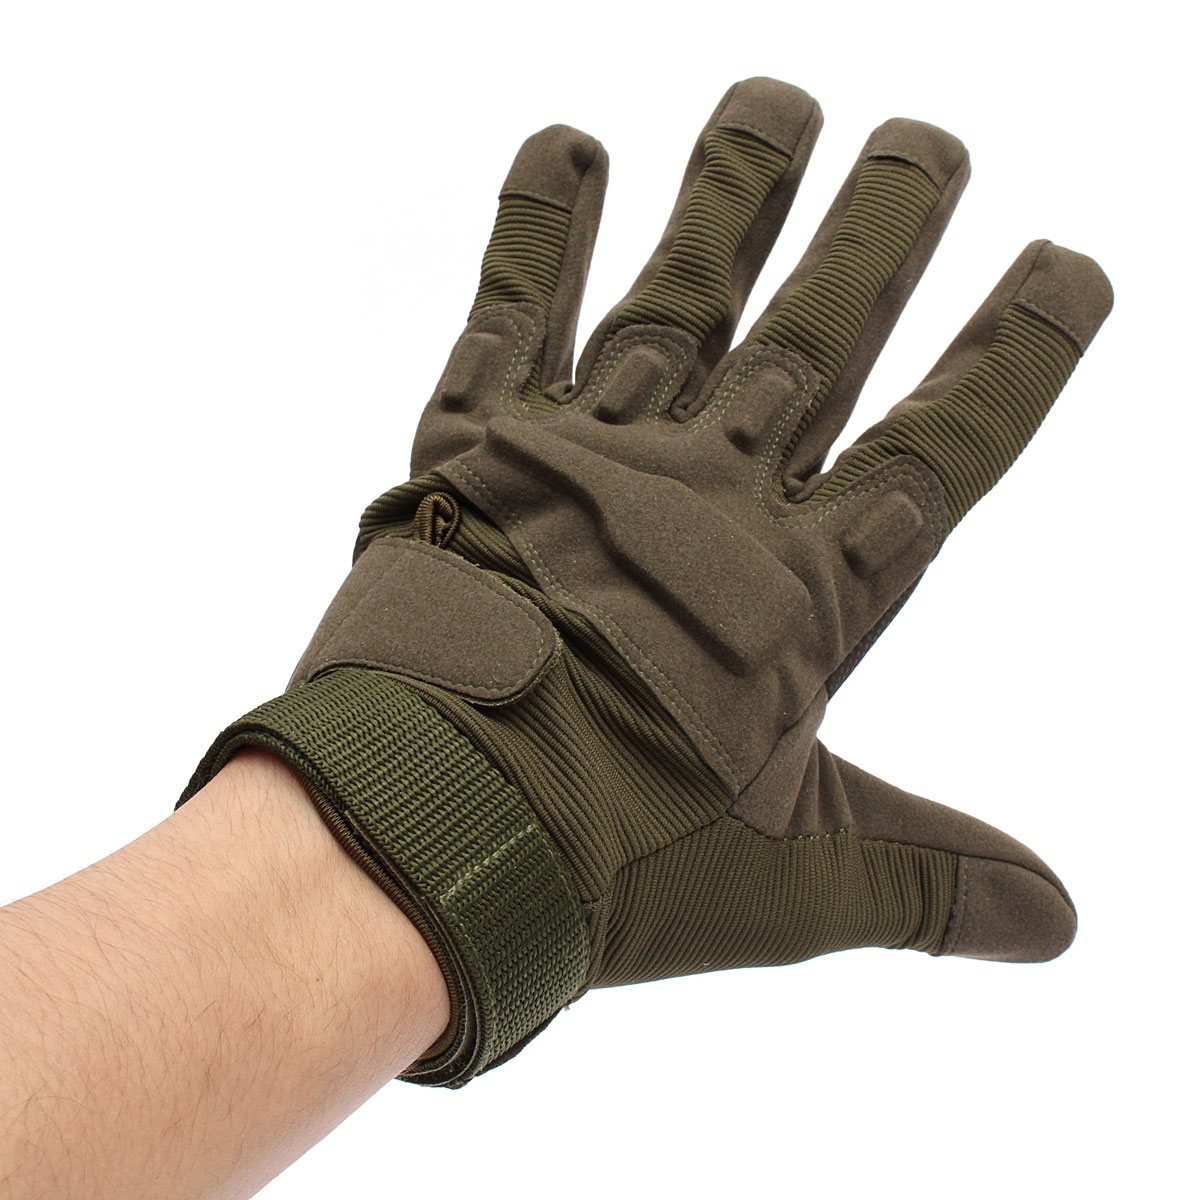 NEW Safurance Anti Slip Full Finger Outdoor Military Airsoft Hunting Cycling Tactical Gloves Workplace Safety Protection Glove esdy esdym 3 outdoor cycling anti slip breathable full finger pu tactical gloves tan m